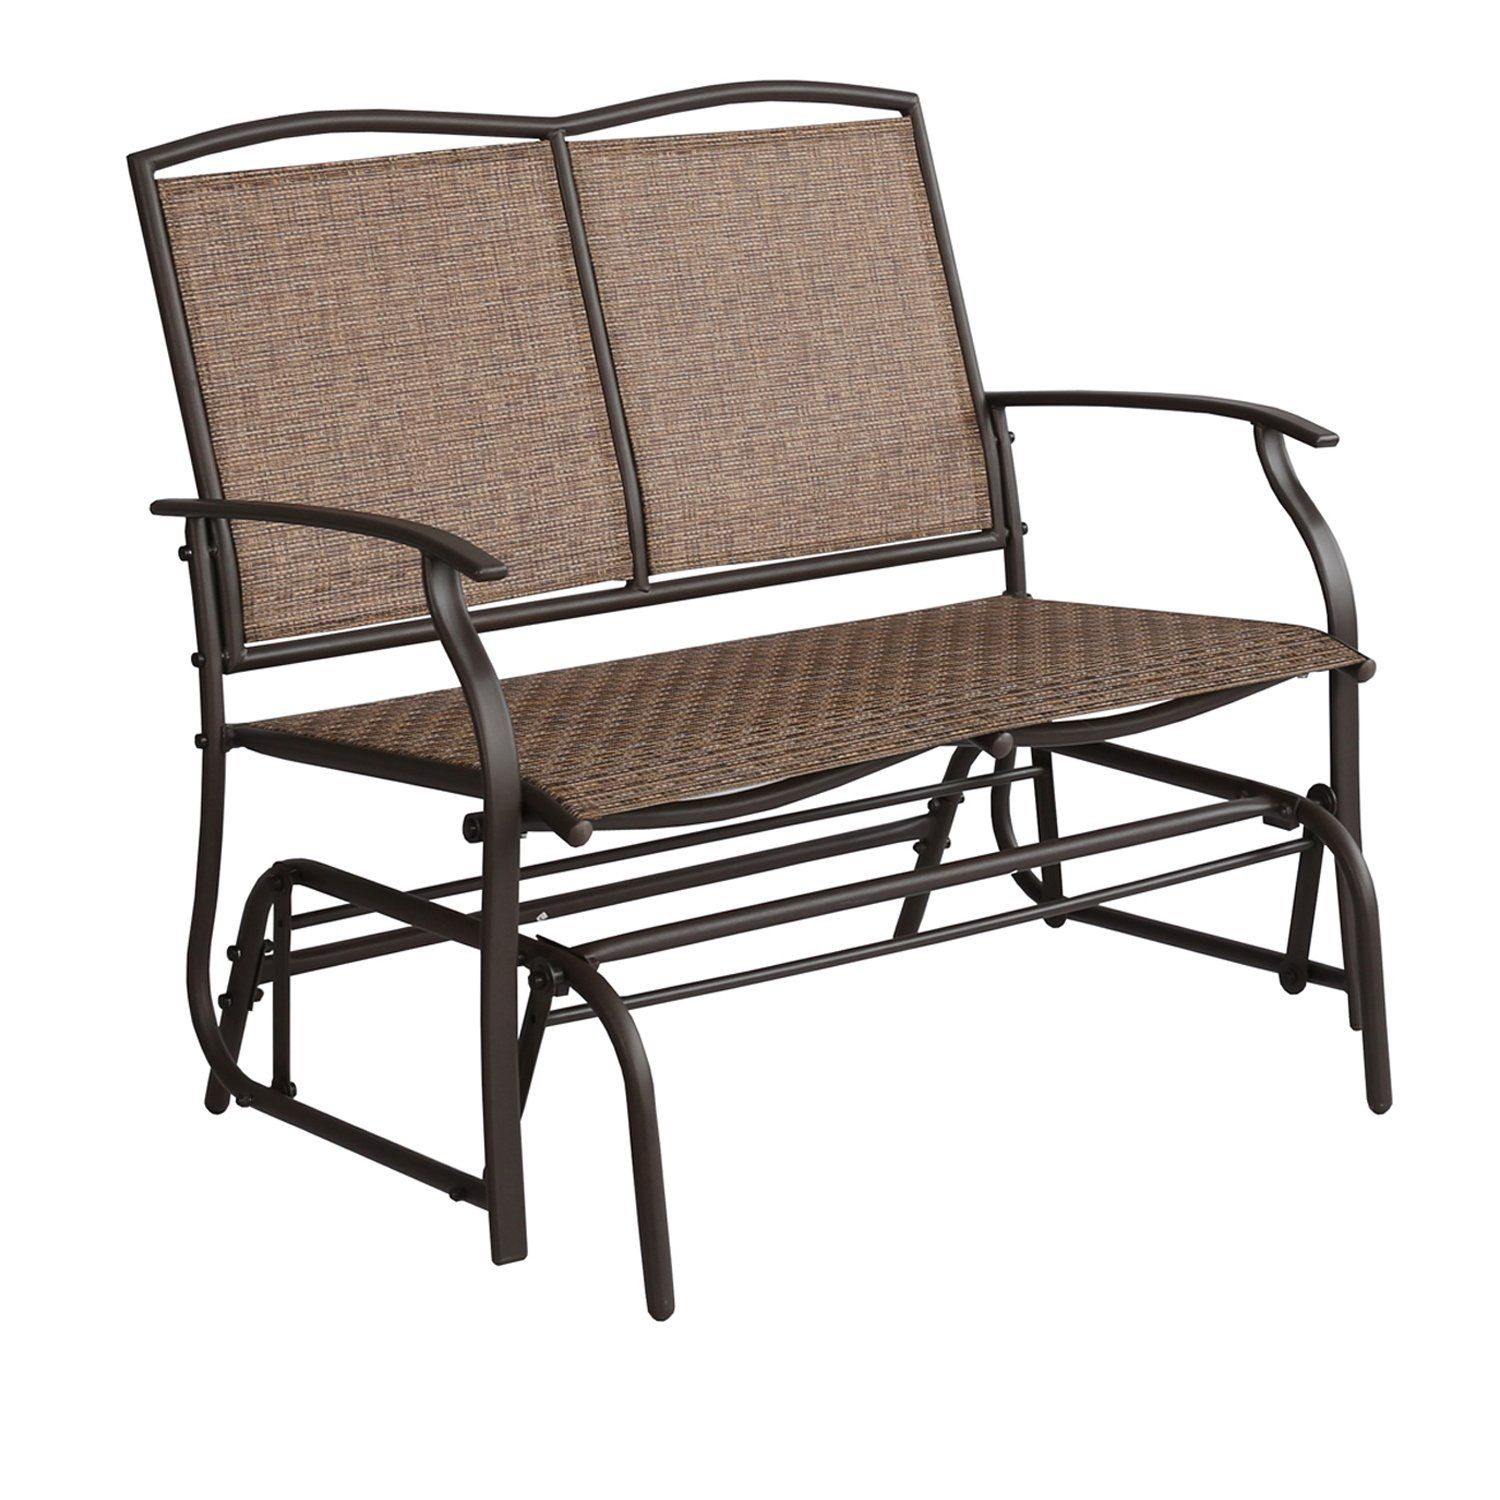 Patio Tree Patio Swing Glider Bench For 2 Person All Intended For 2 Person Loveseat Chair Patio Porch Swings With Rocker (View 6 of 25)